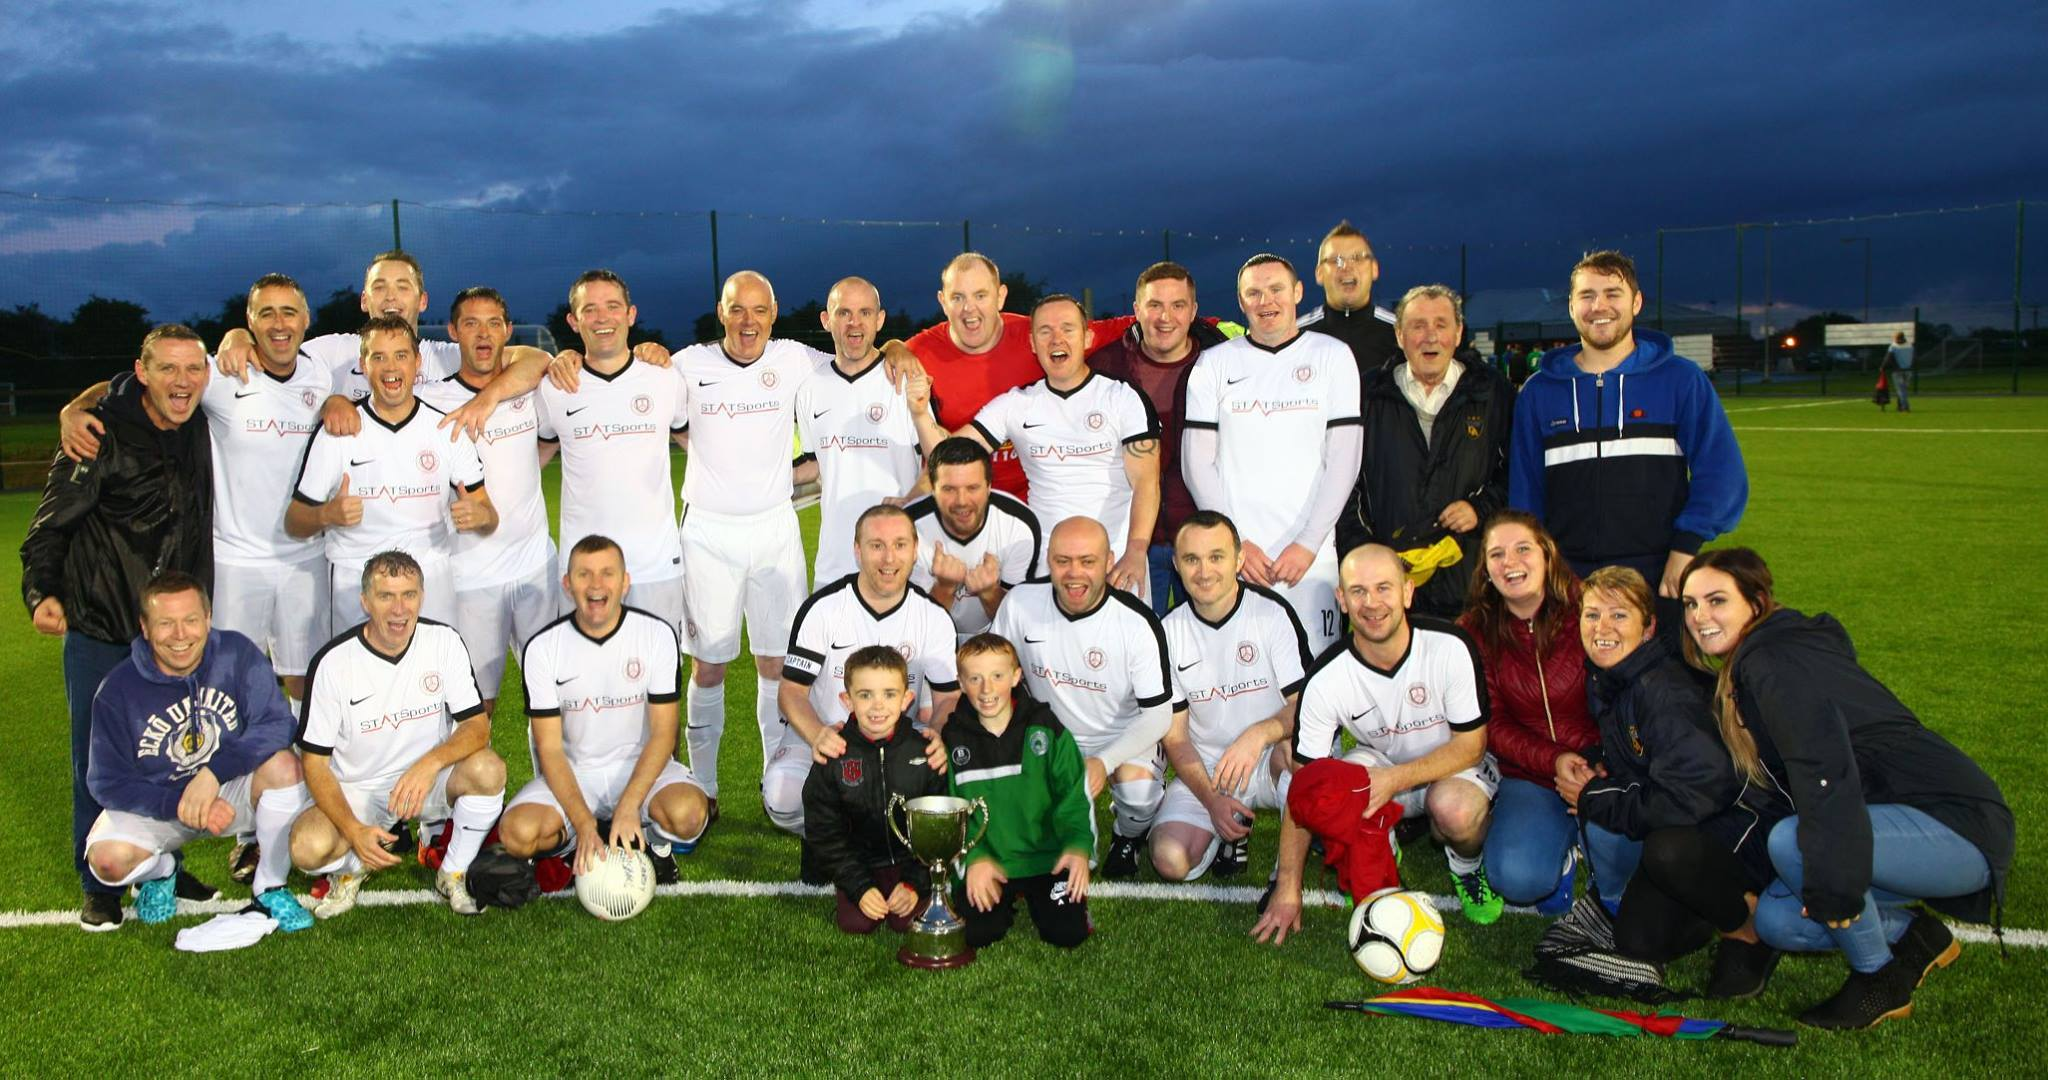 Doolargey All Stars cup winners over 35